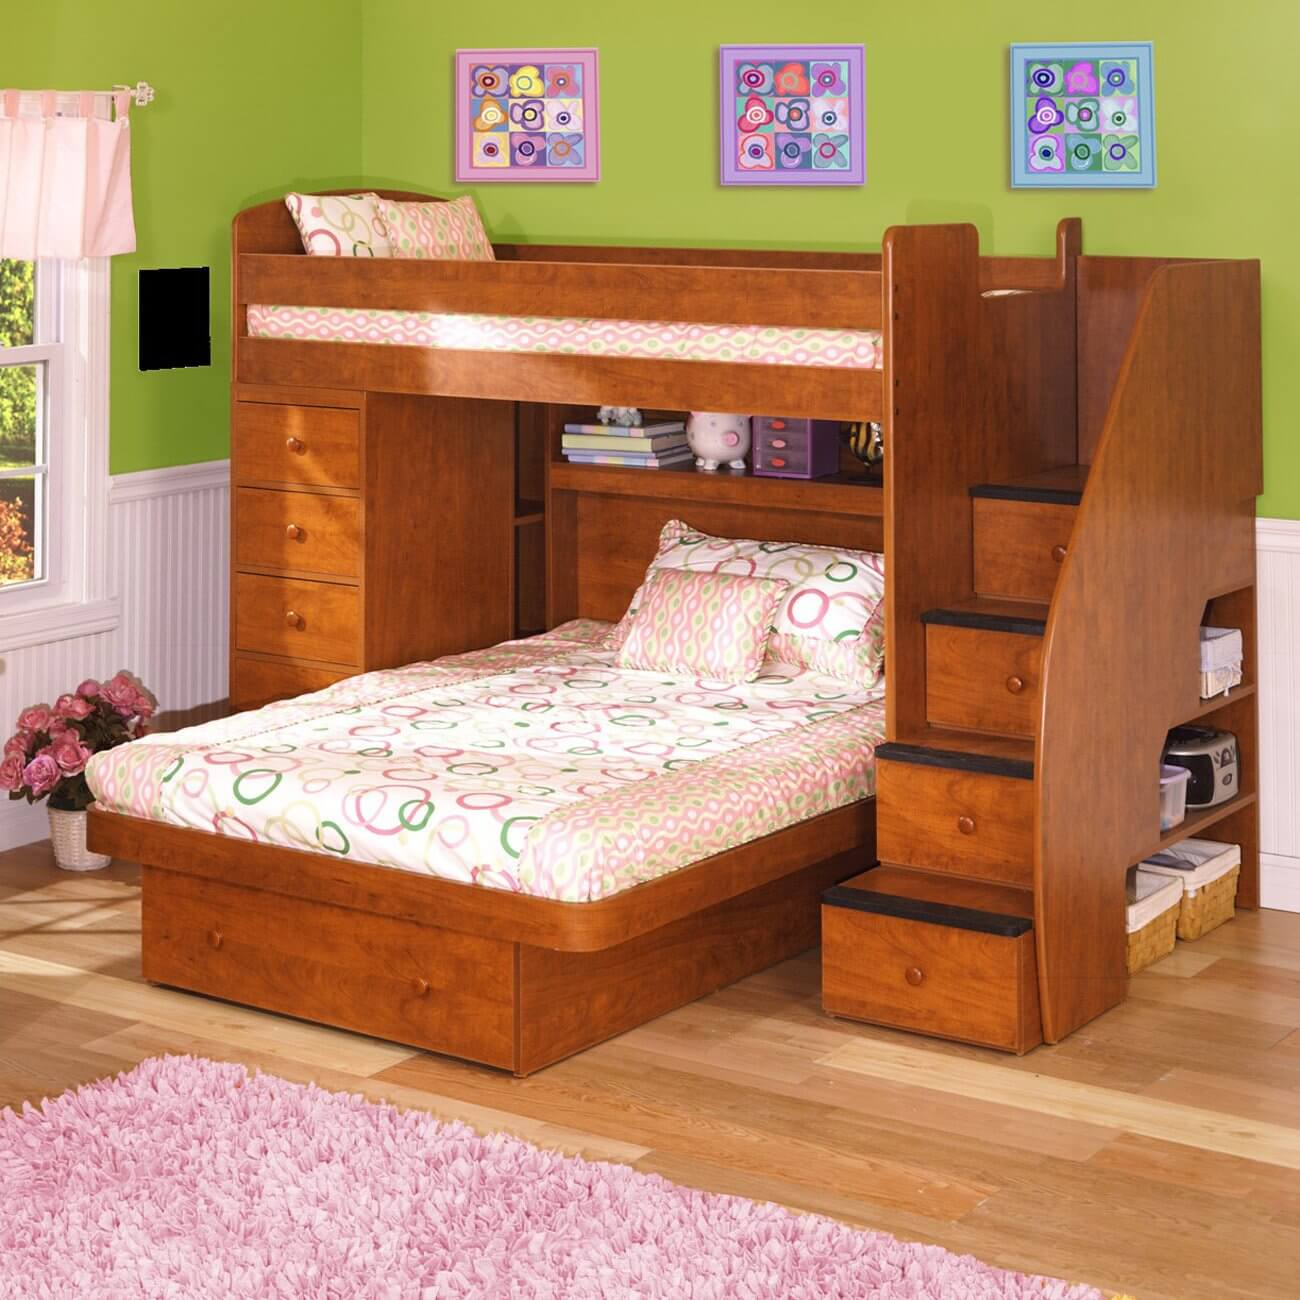 Wooden bed furniture design - Wooden Bed Furniture Design 14